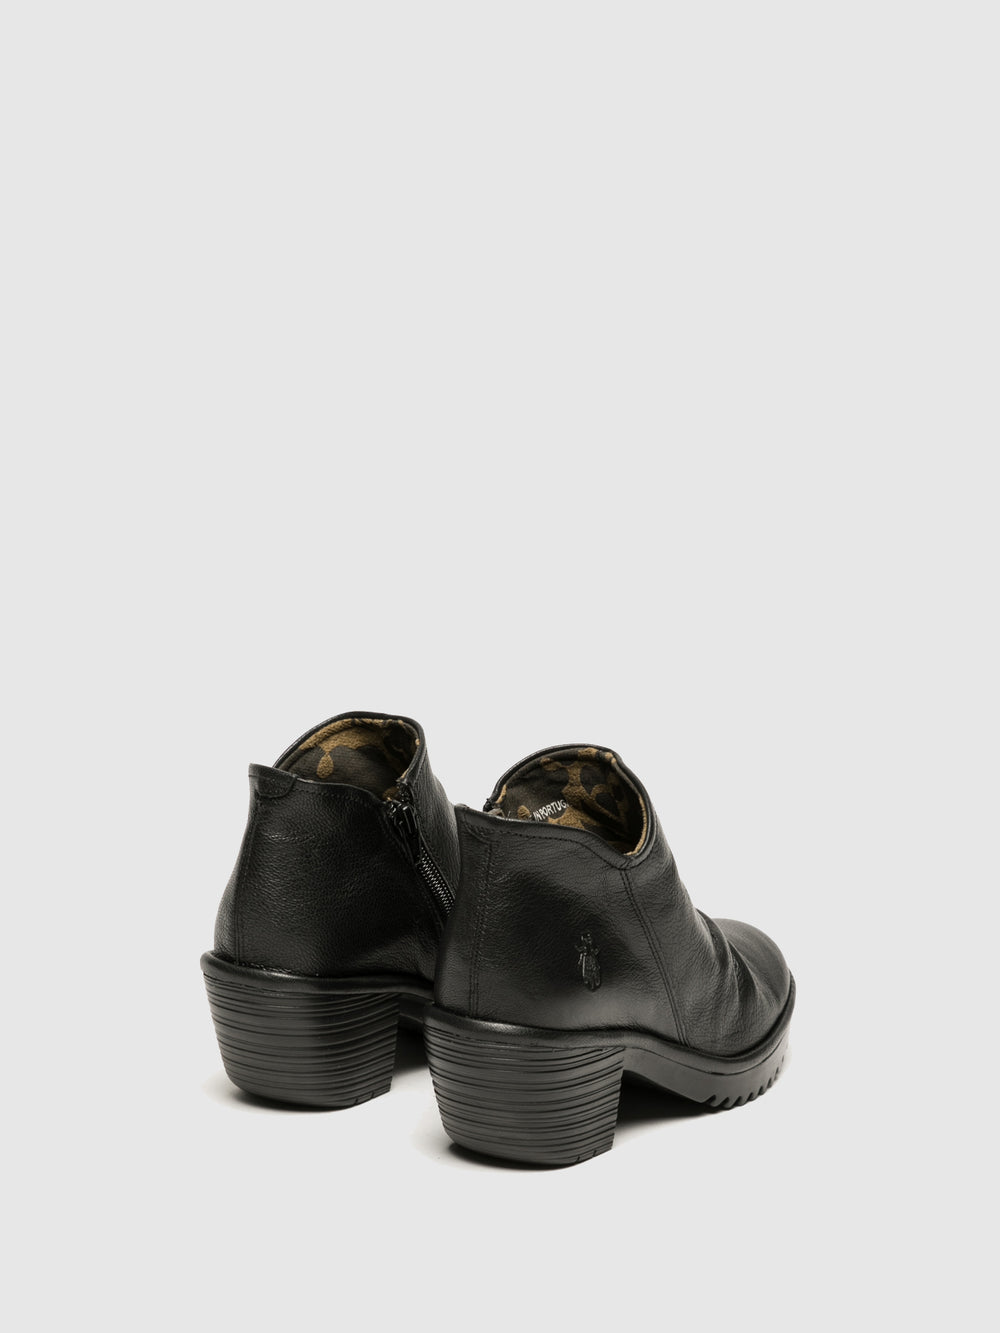 Zip Up Ankle Boots WEZO890FLY BLACK